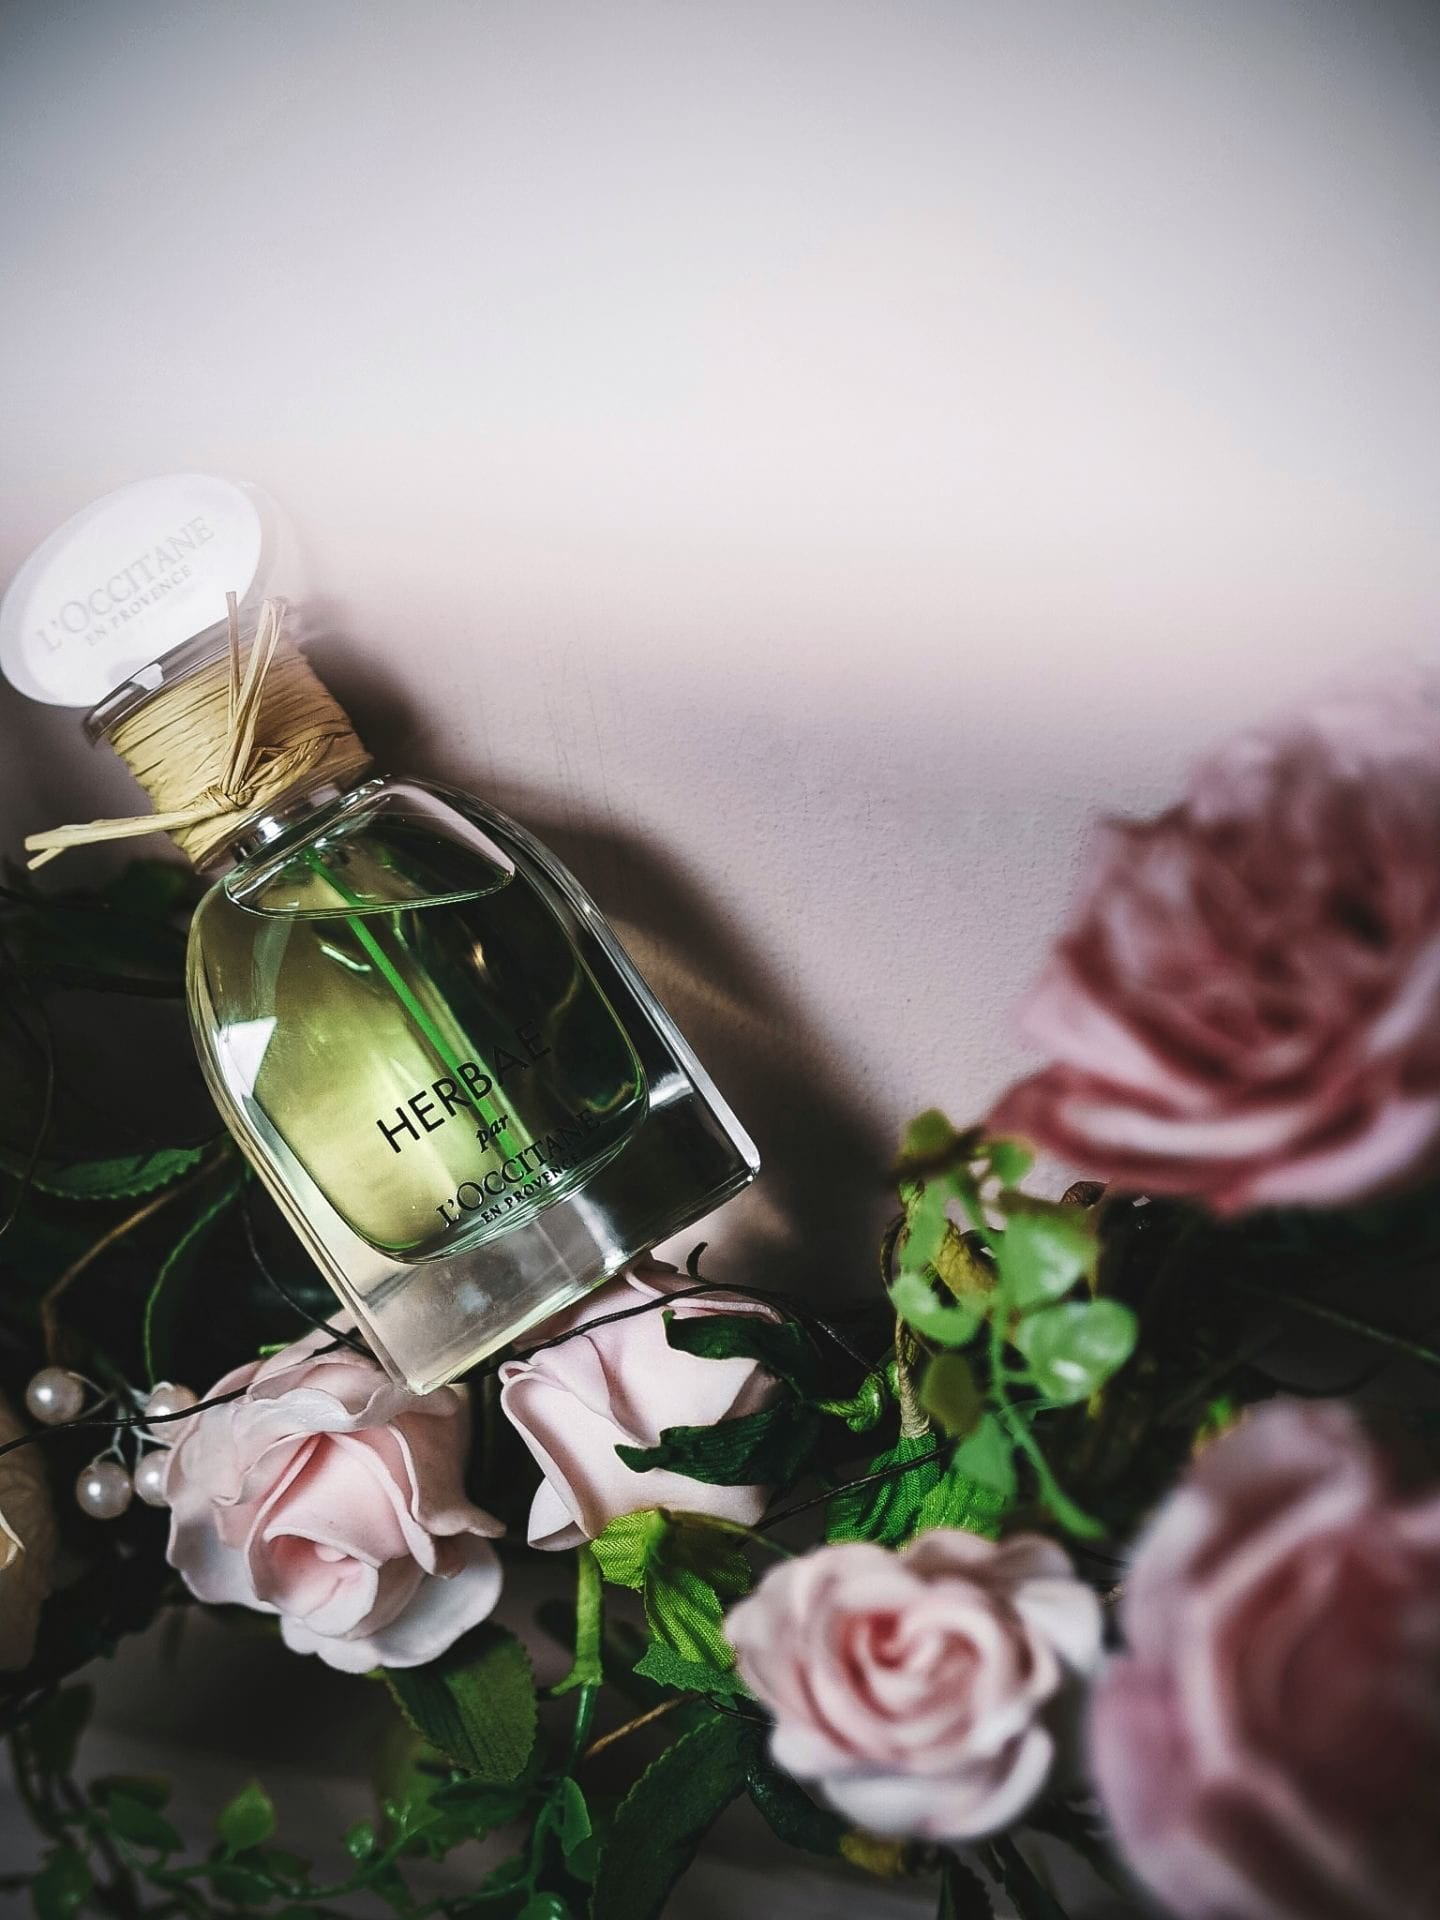 L'Occitane 'Herbae par L'Occitane' the best l'occitane perfume fragrance review 2019 green perfume new launch the best of french fragrances olympus pen lens 45mm